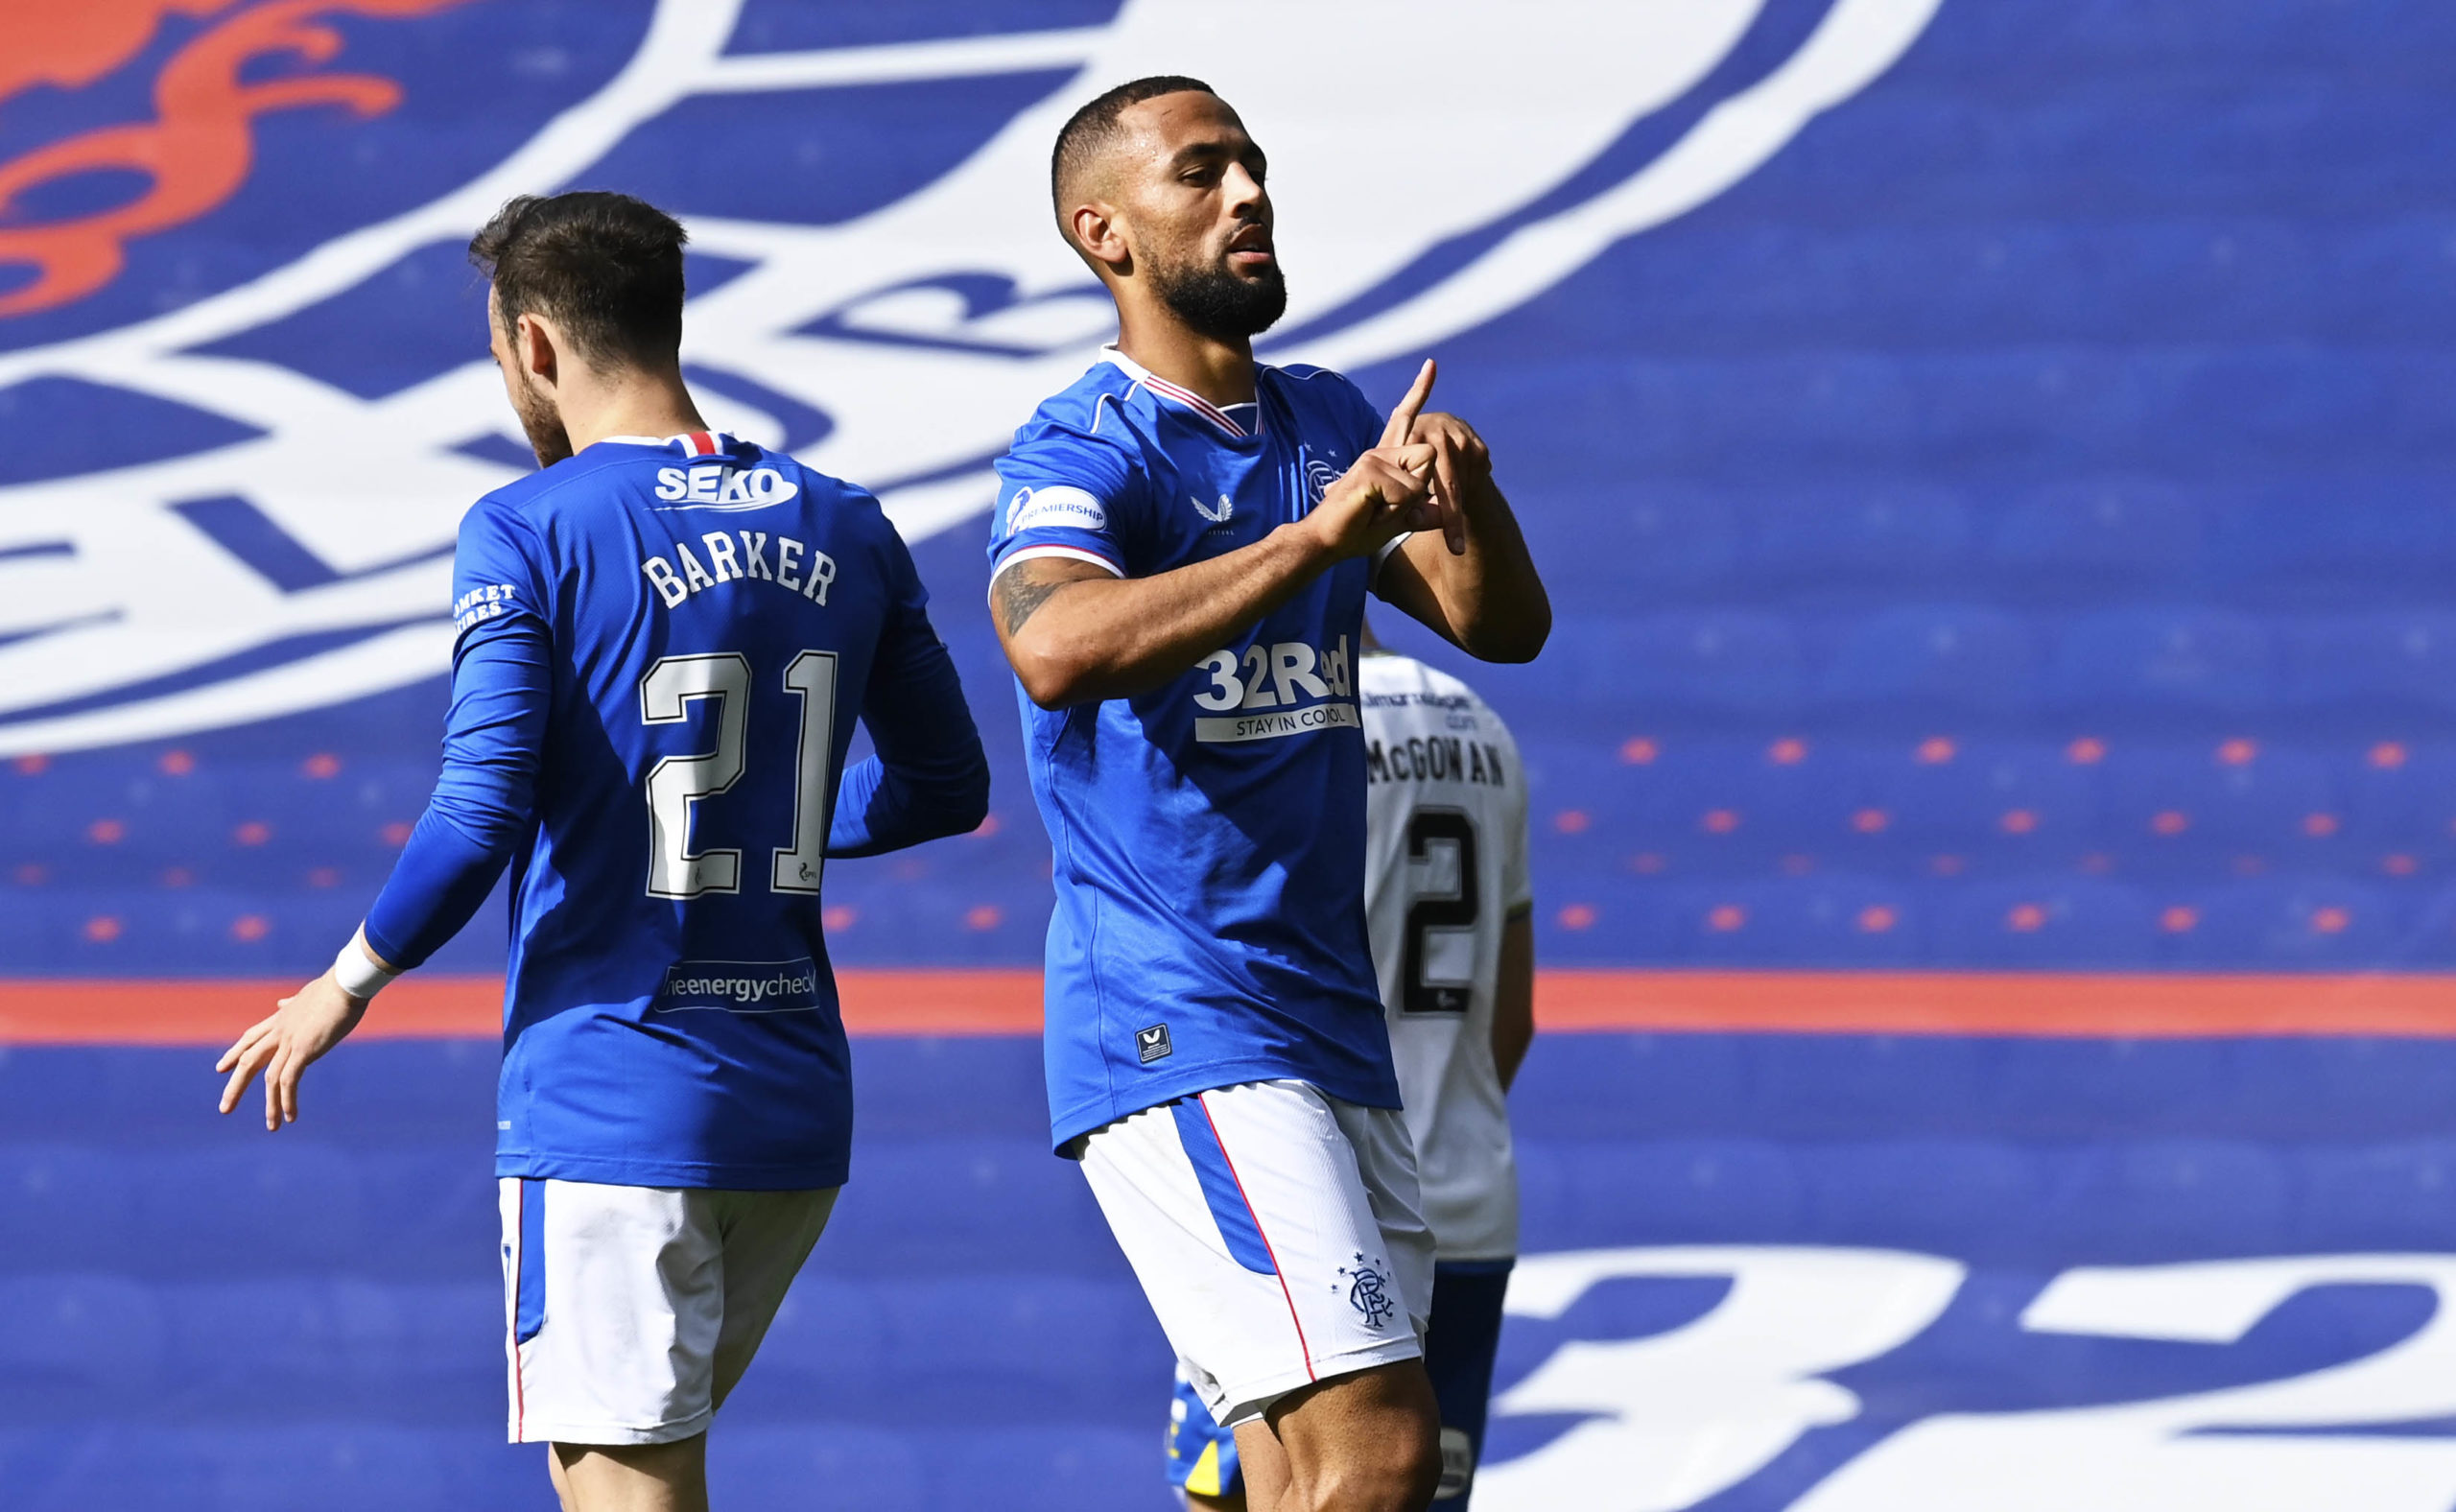 Kemar Roofe celebrates after scoring to make it 1-0 during the Scottish Premiership match between Rangers  and Kilmarnock